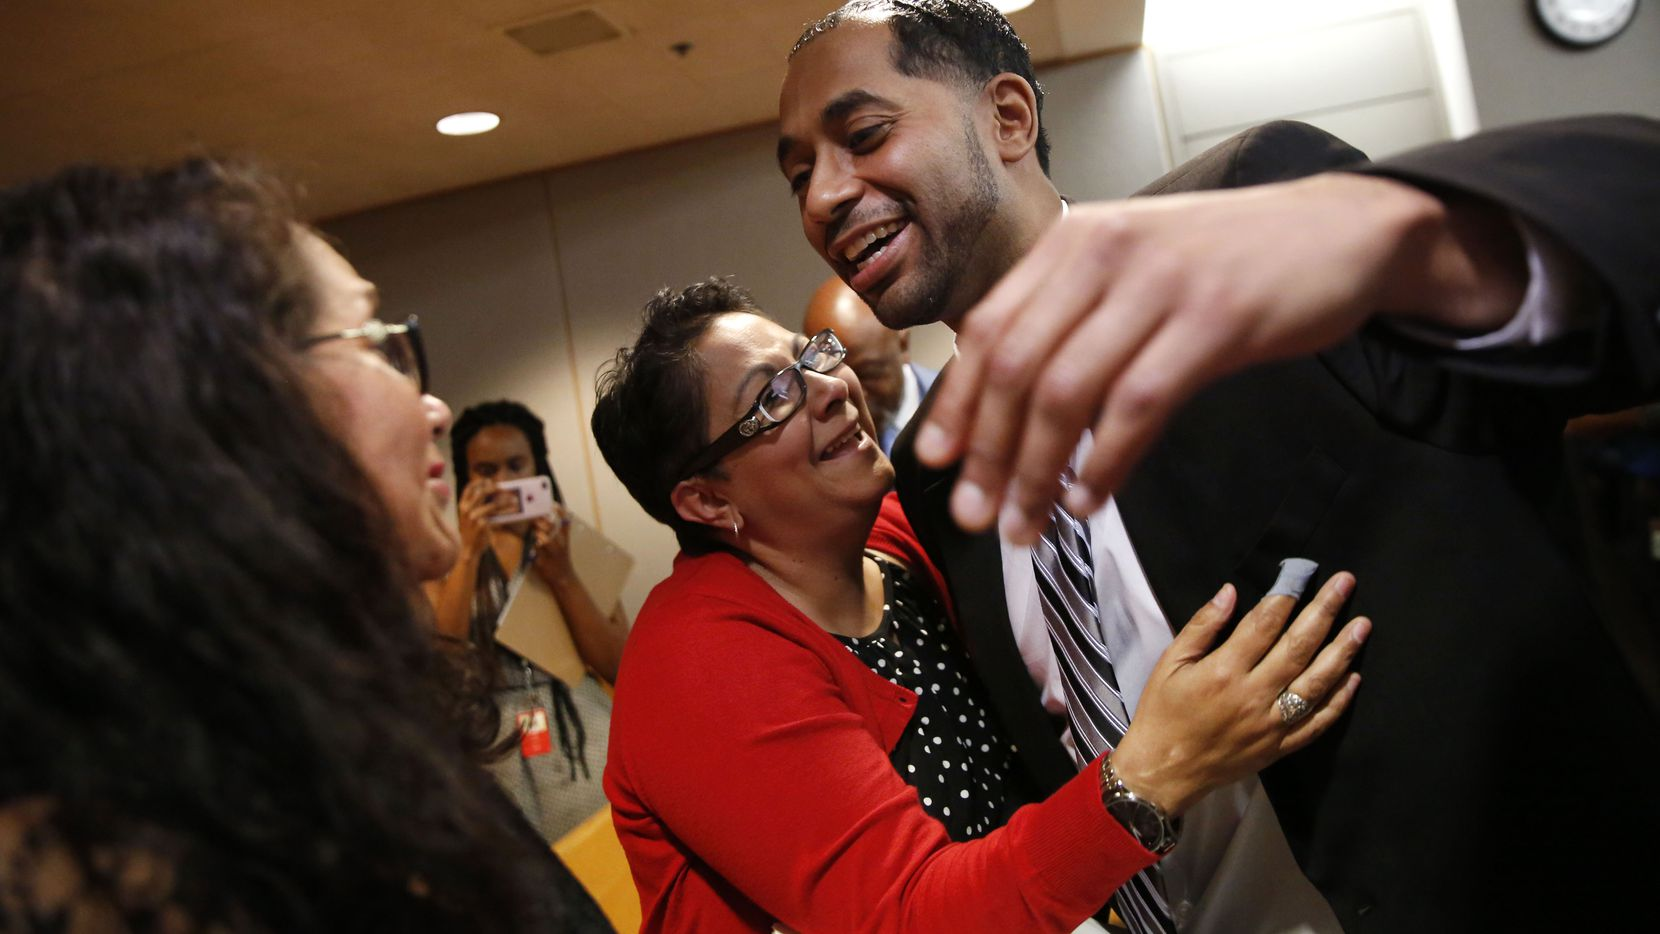 After hugging his aunt, Joanne Alonzo-Gloria, (center, in red) Quintin Lee Alonzo, (right) who was wrongfully convicted of the murder of Santos Gauna and sentenced to life in prison, reaches to hug his mother Julie Vazquez (far left, back to camera)  after being declared innocent during a hearing at the Frank Crowley Courts Building in Dallas on May 30, 2018.